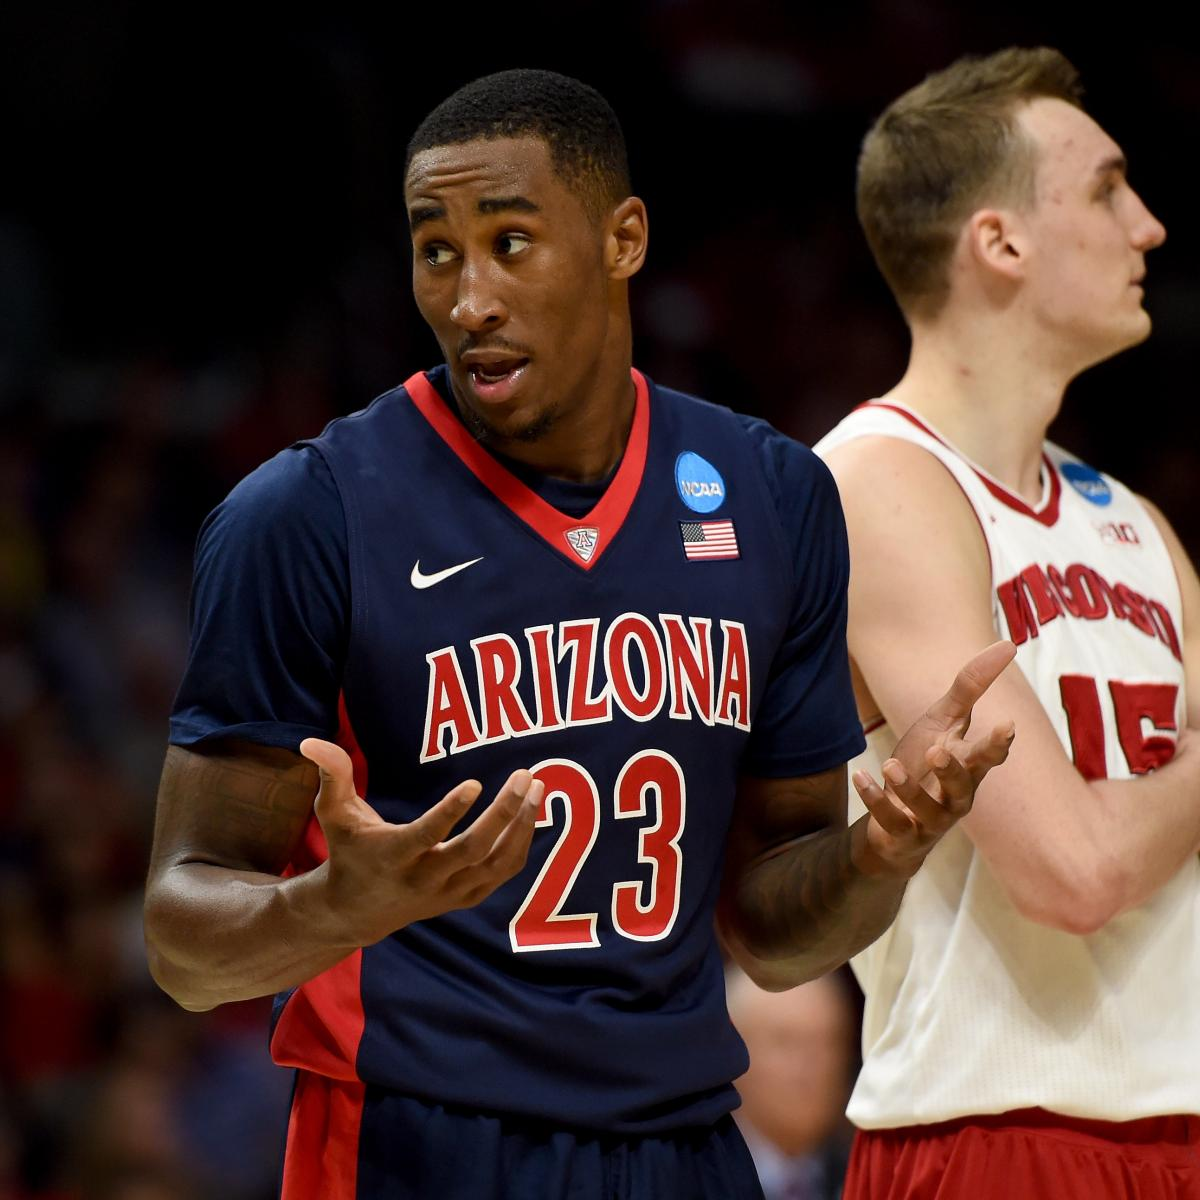 Nuggets Clippers Highlights: 5 NBA Draft Combine Prospects Los Angeles Clippers Must